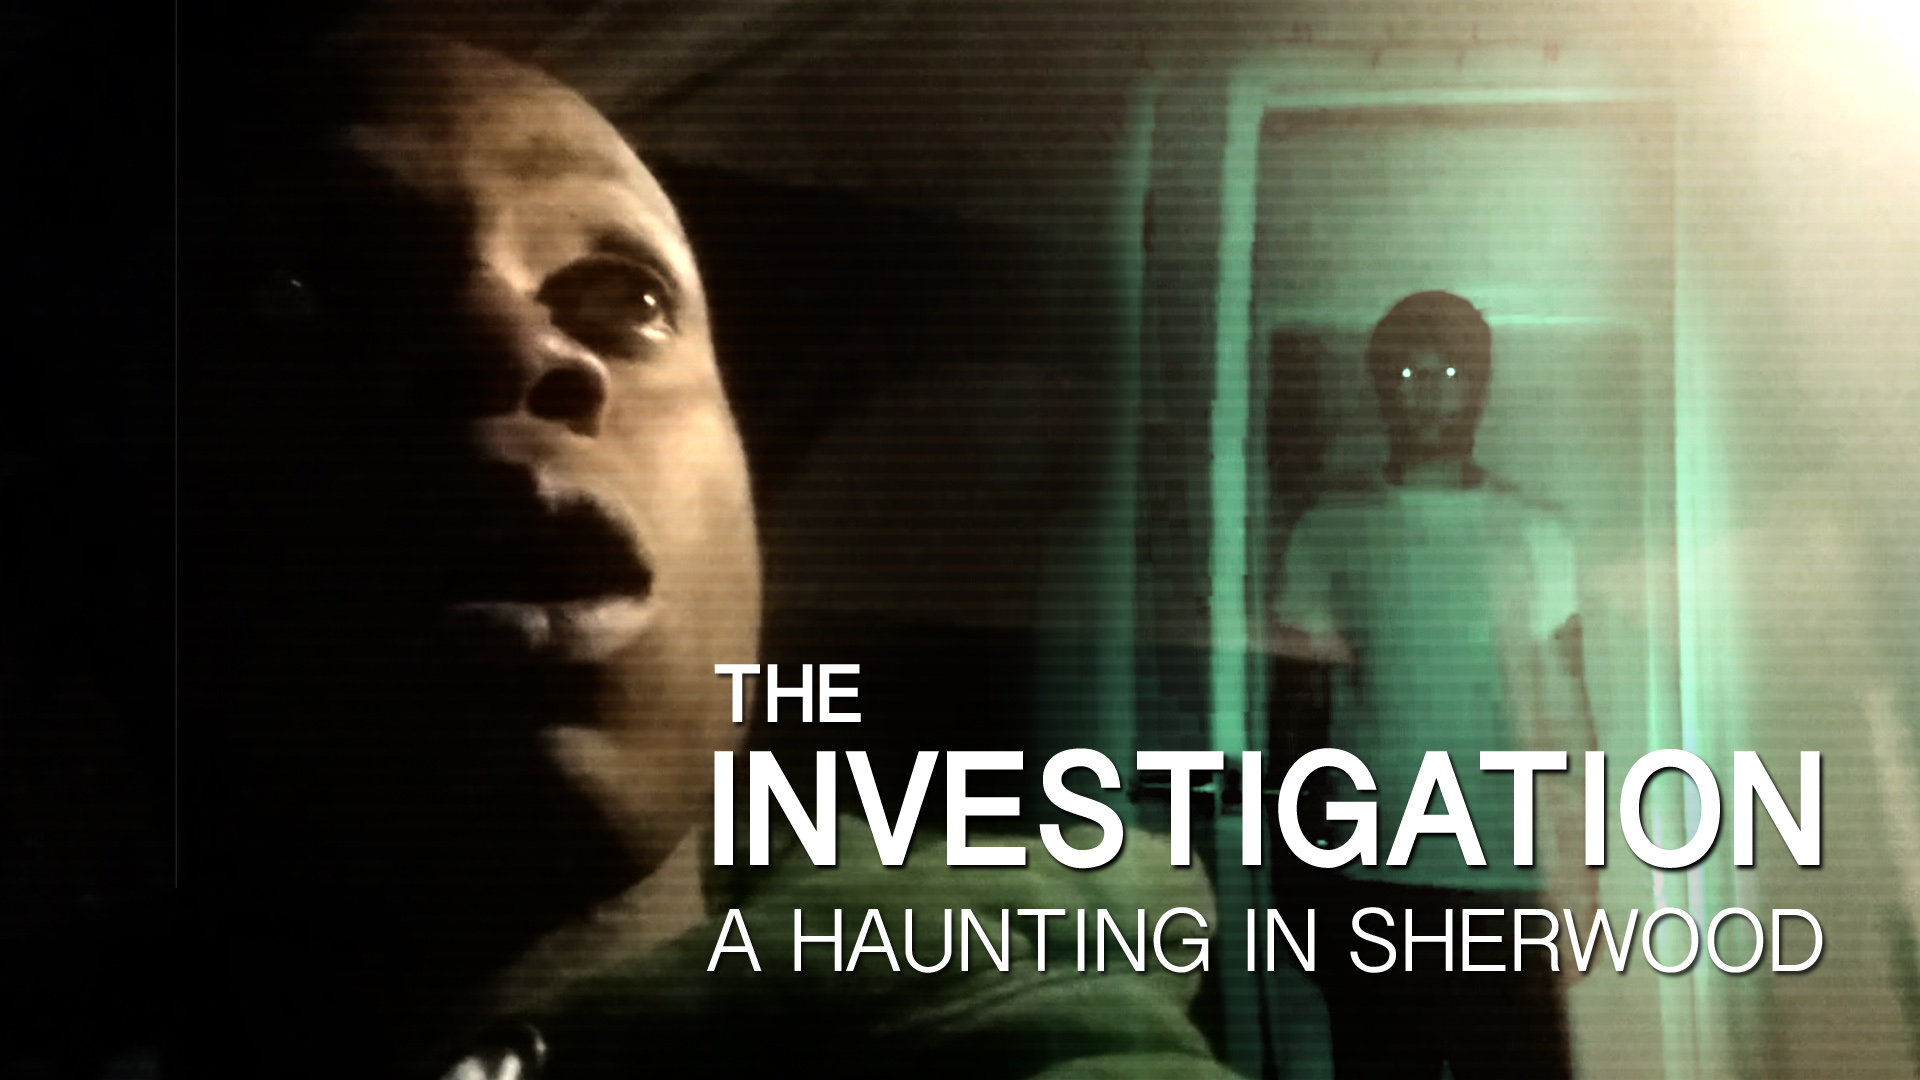 The Investigation : A Haunting in Sherwood